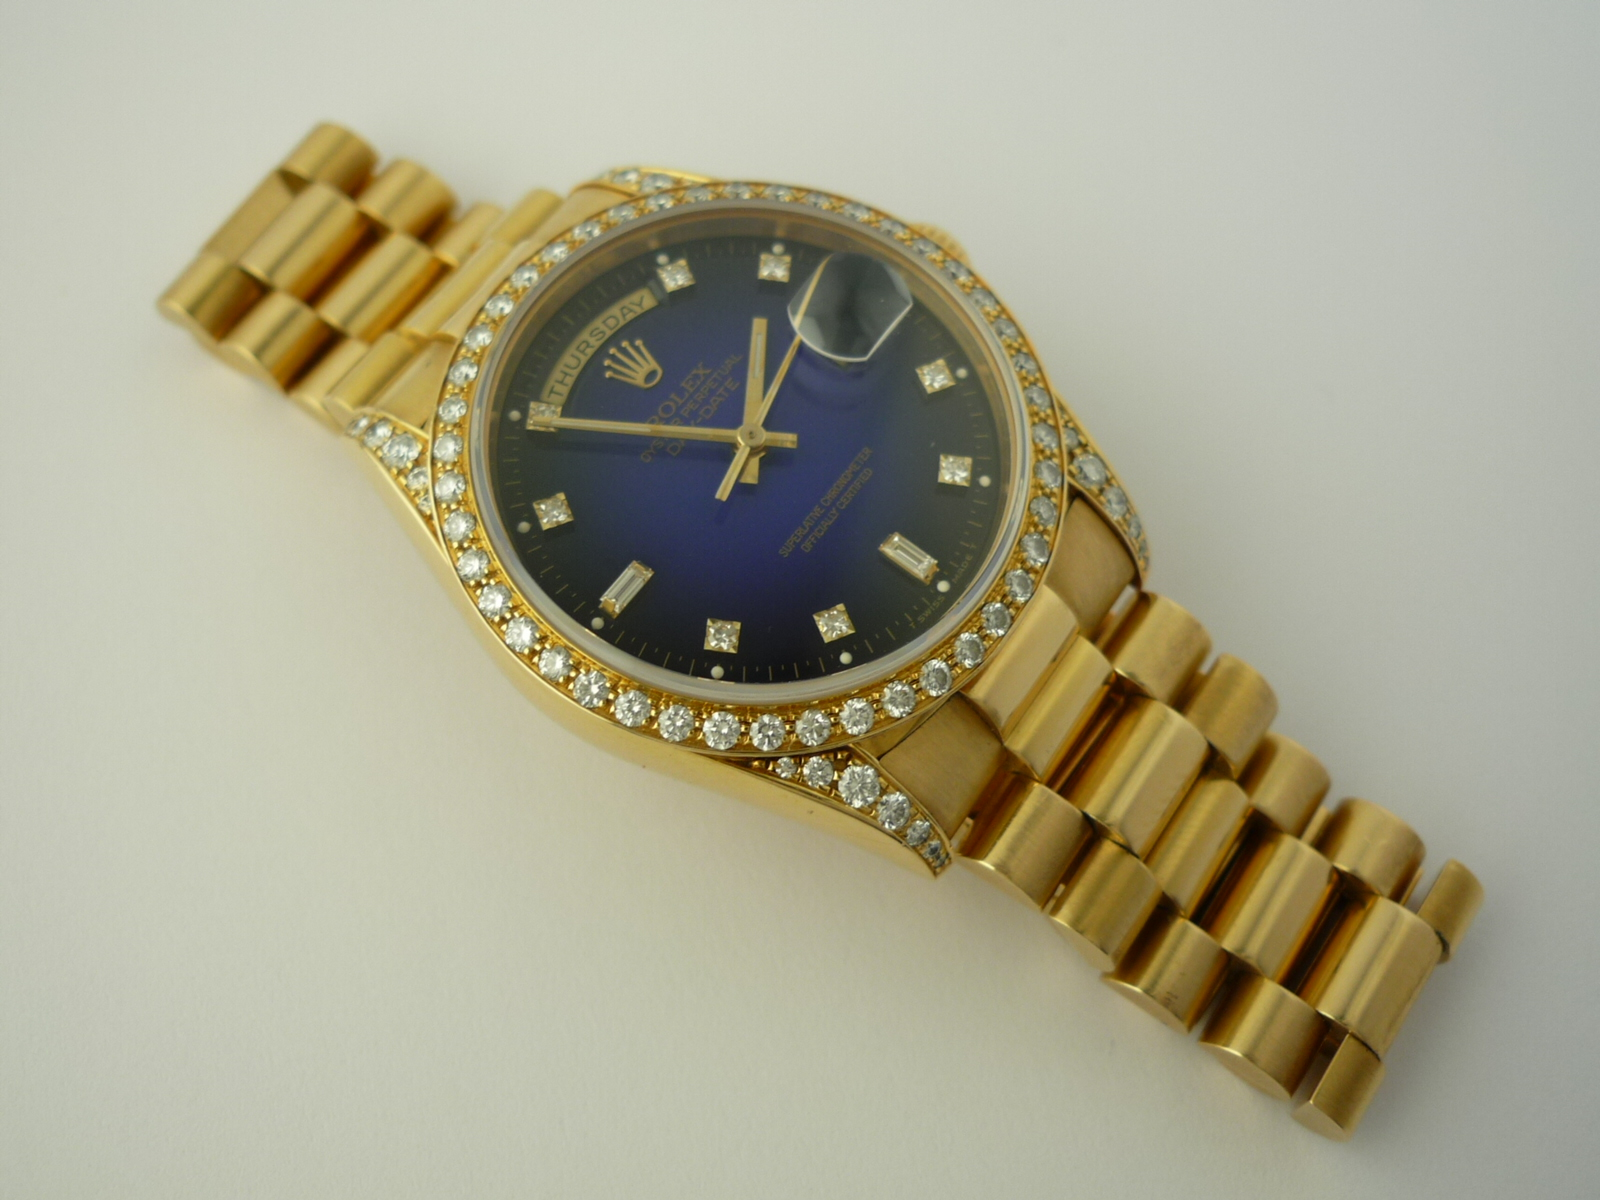 Rolex Oyster Perpetual Day Date Ref 18388 1990 Box And